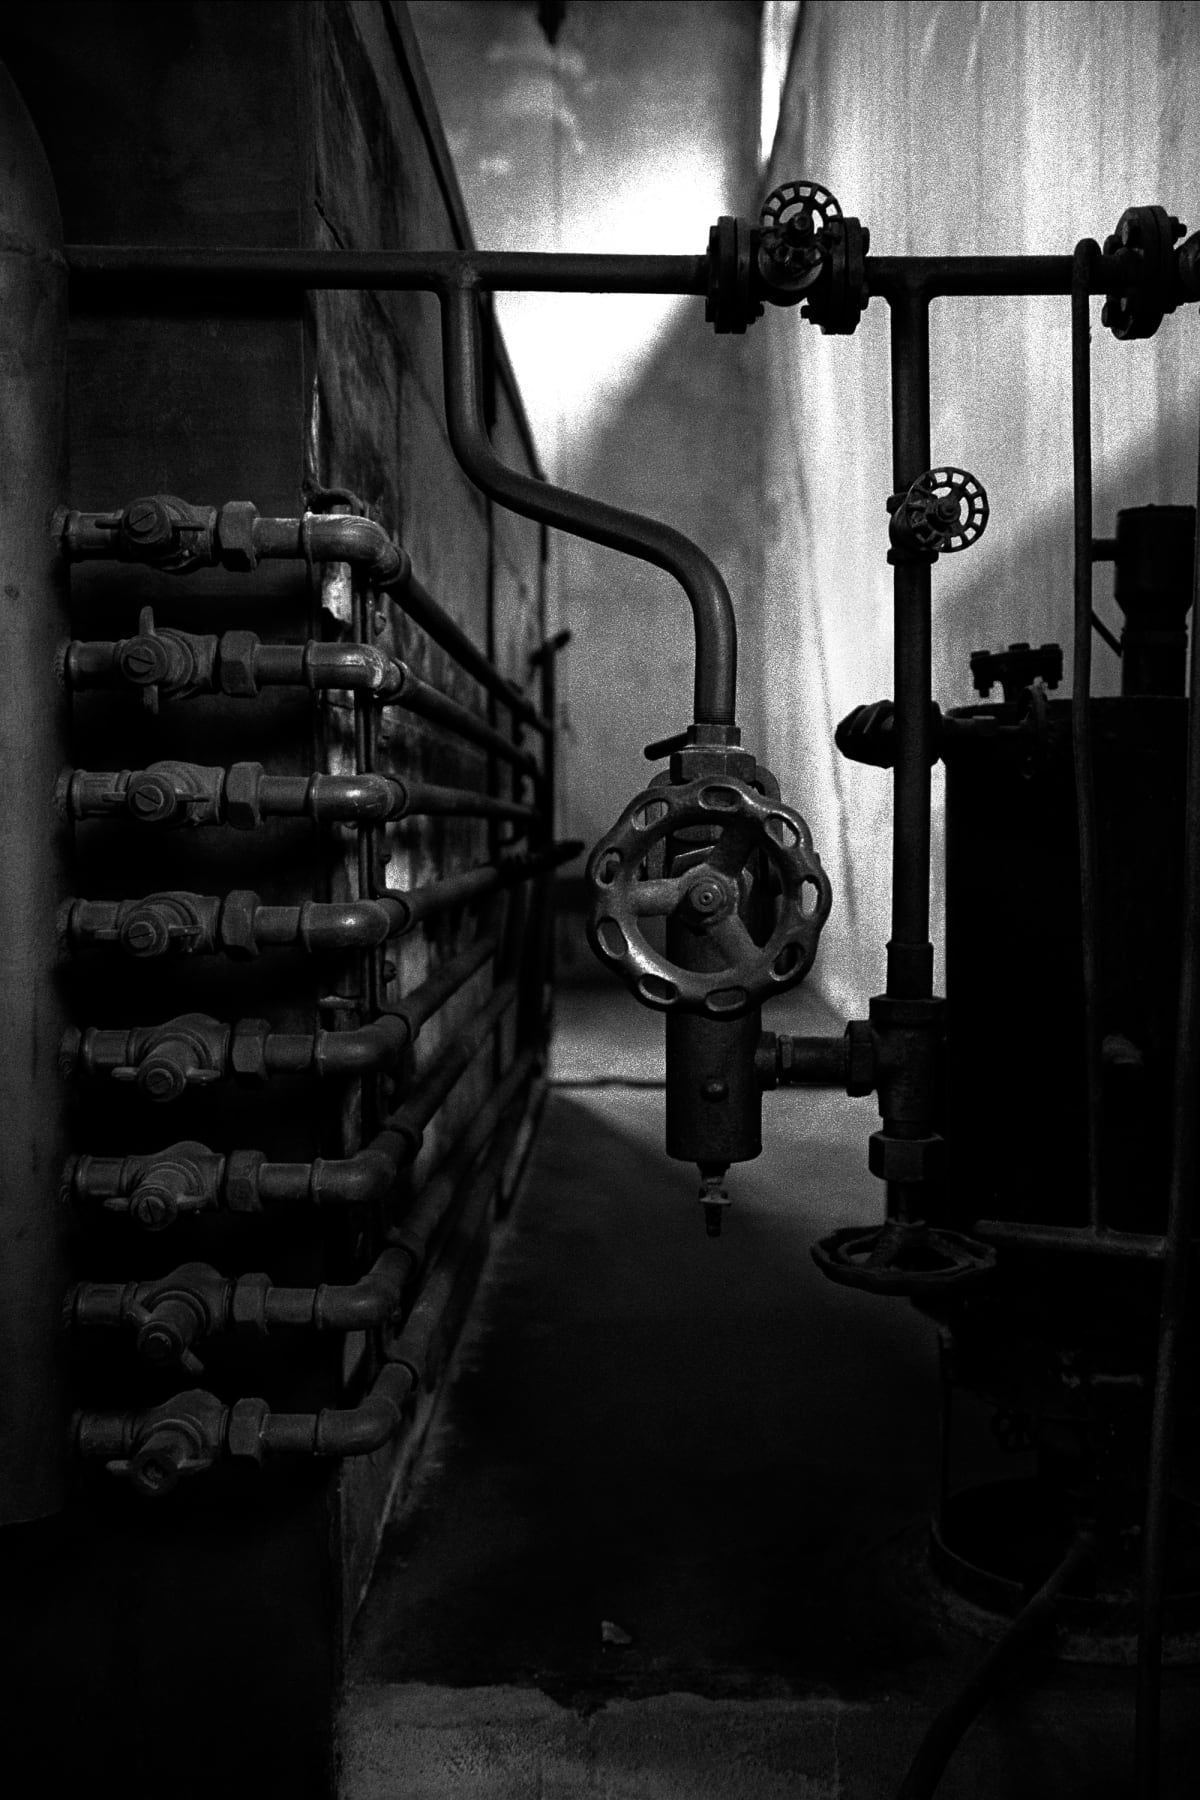 Judy Glickman Lauder Gas valves, crematoria, Theresienstadt concentration camp, Czech, 2018 Archival Pigment print 18 x 22""